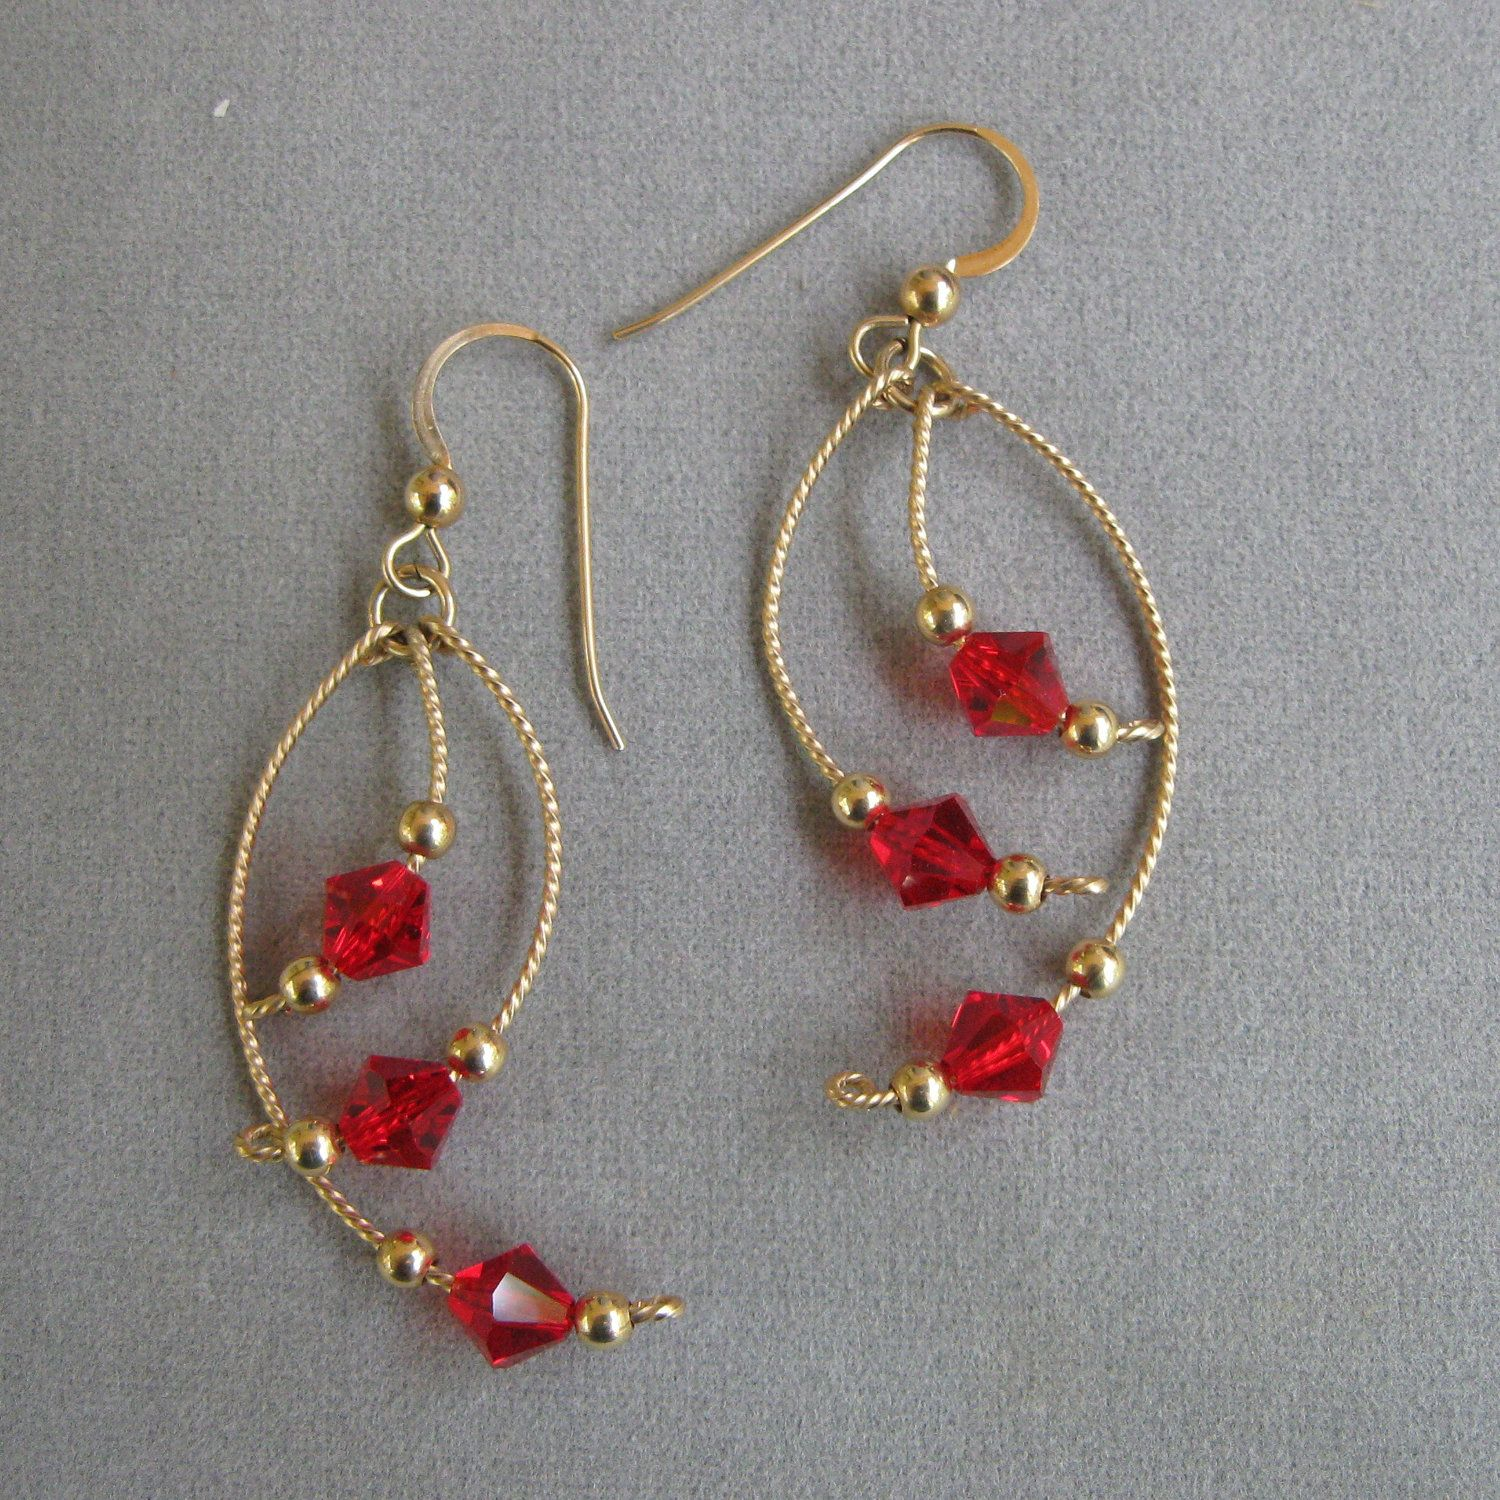 Wire-Wrapped Earrings with Red Swarovski Crystals. $30.00, via Etsy ...